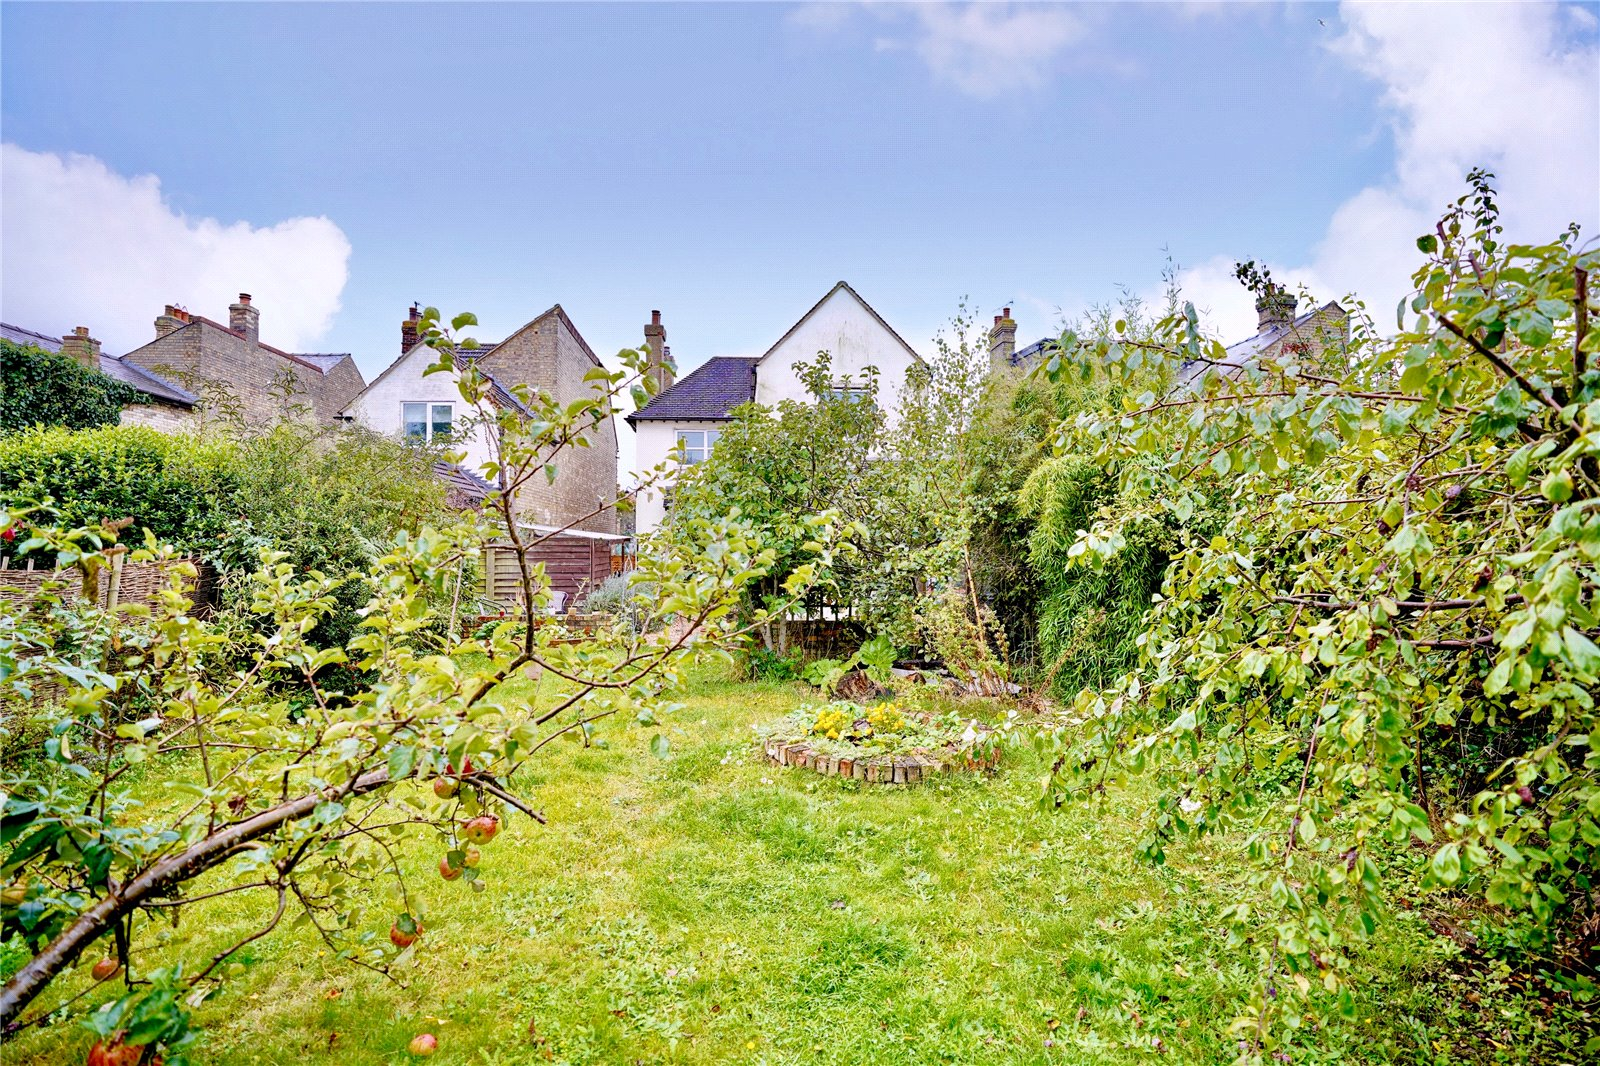 4 bed house for sale in St. Ives, PE27 5QP, PE27